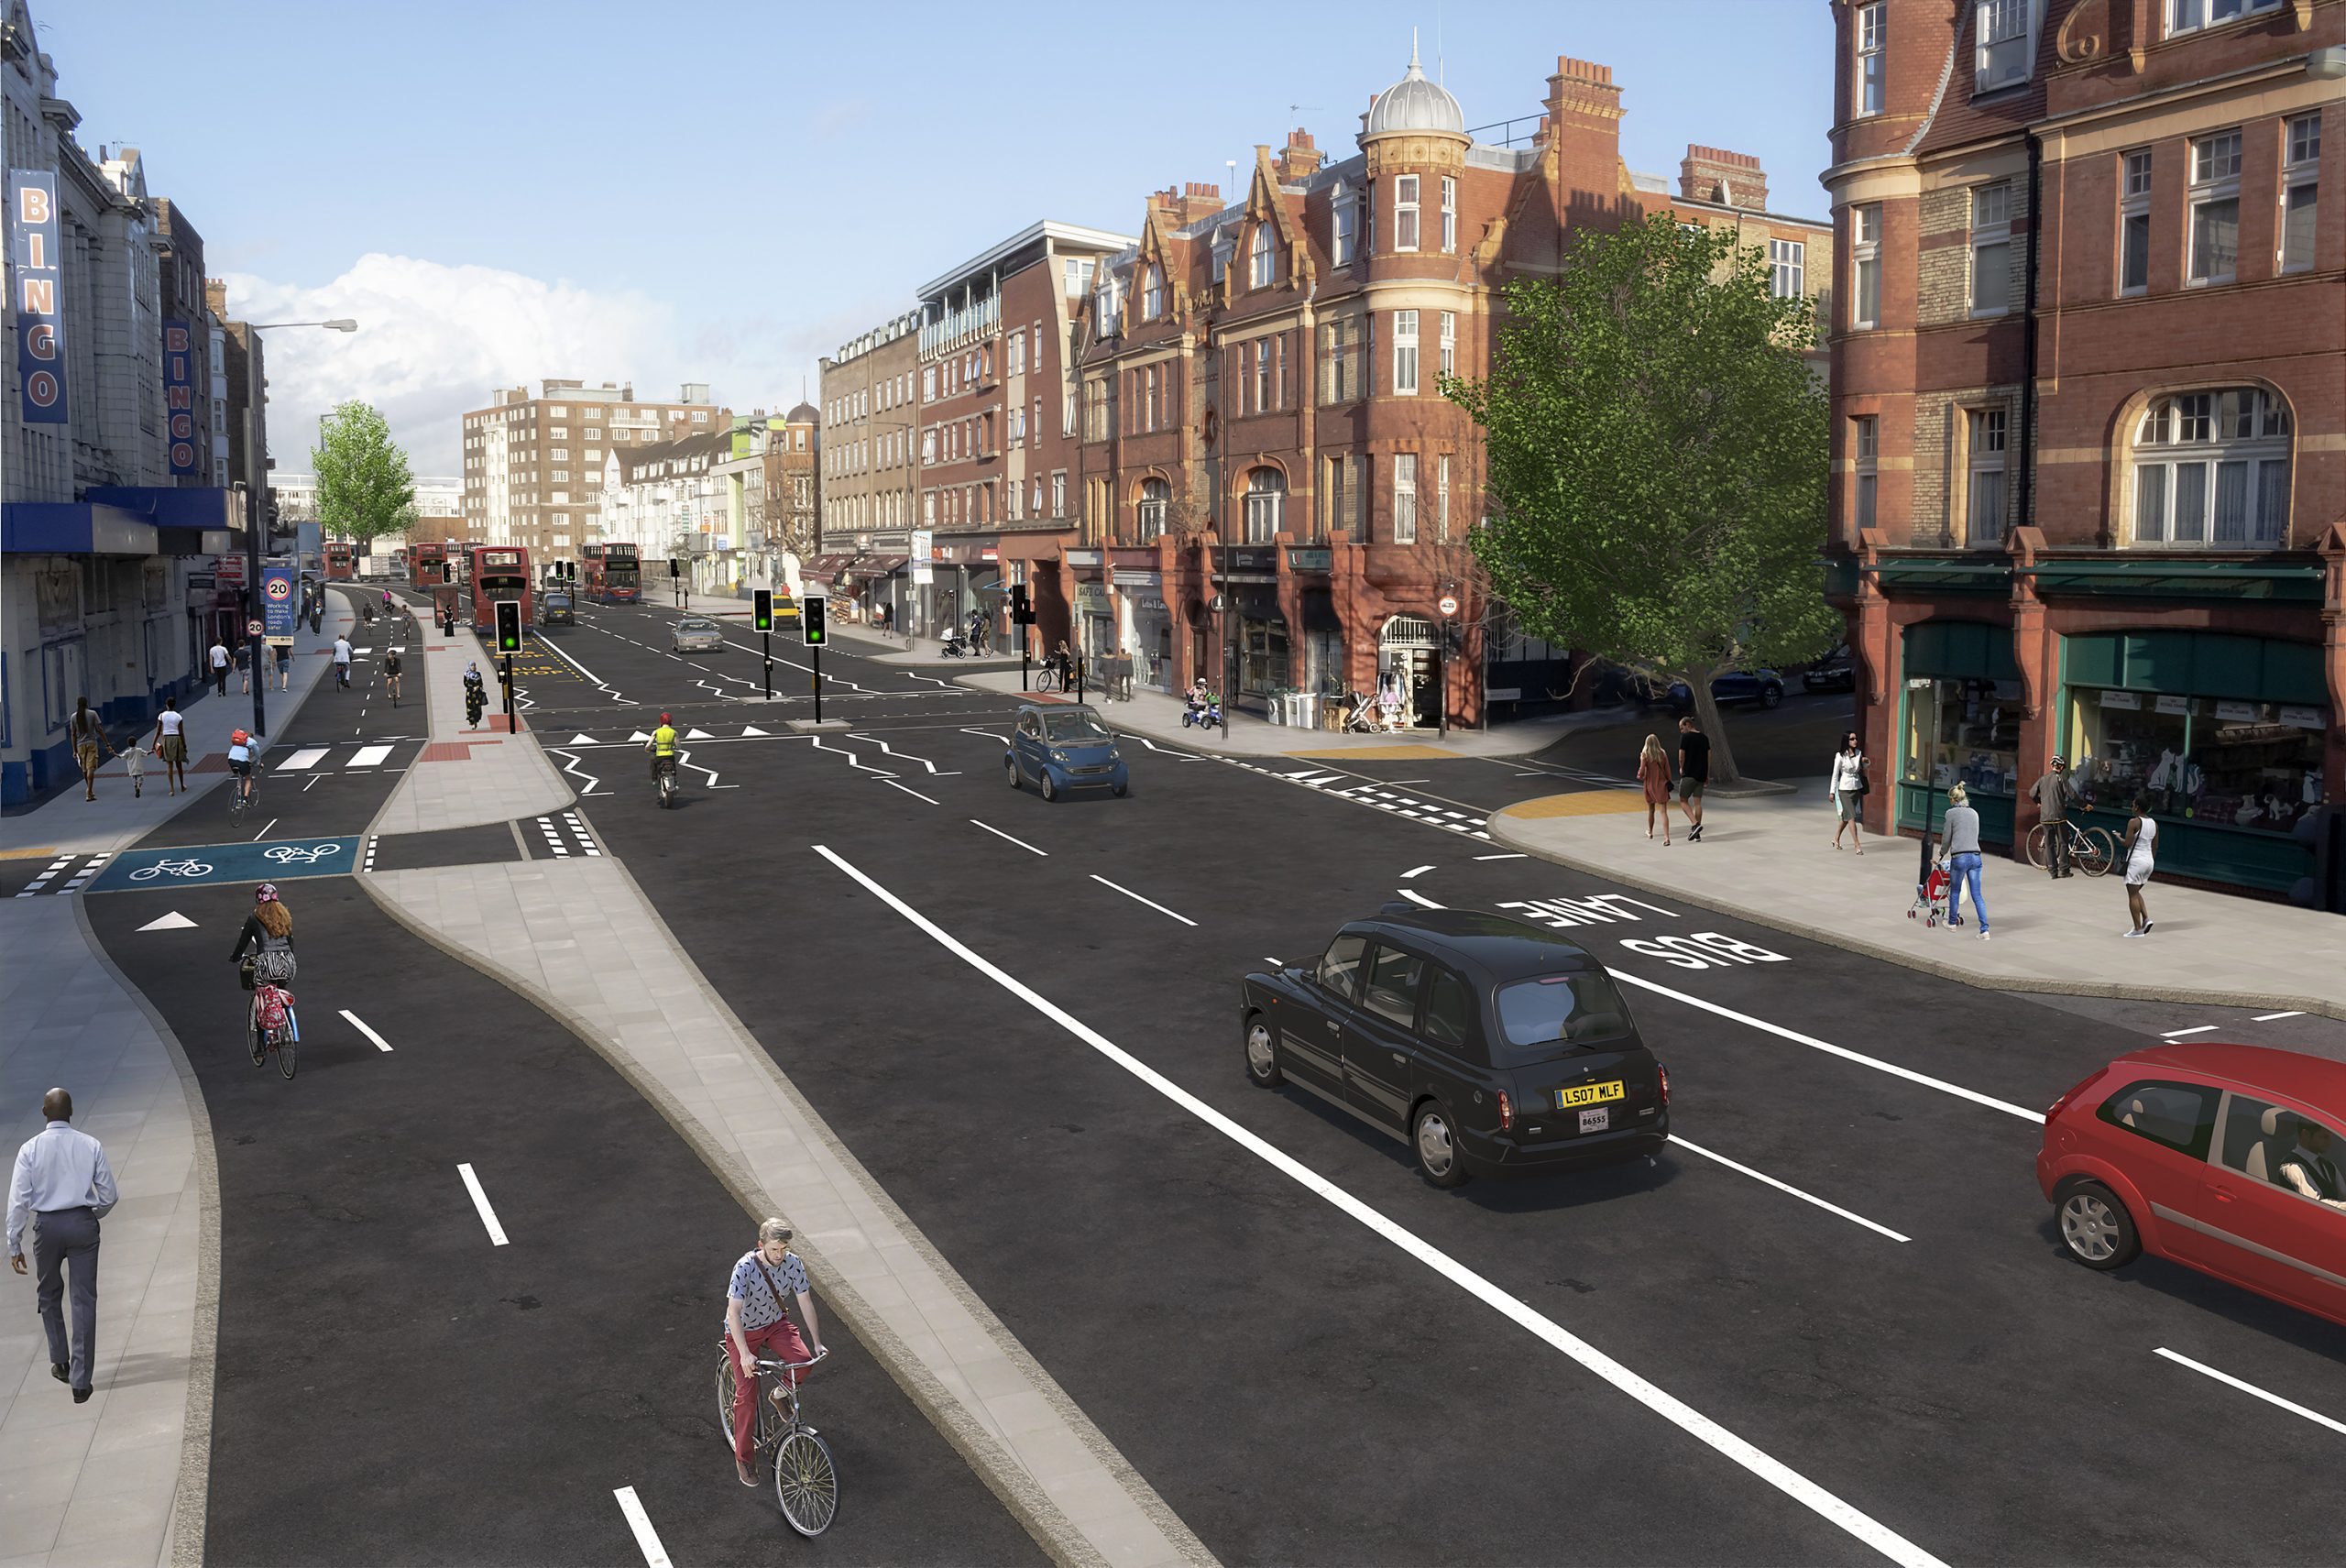 GHD appointed by TfL to support on development of designs for Cycle Future Route 15 in London